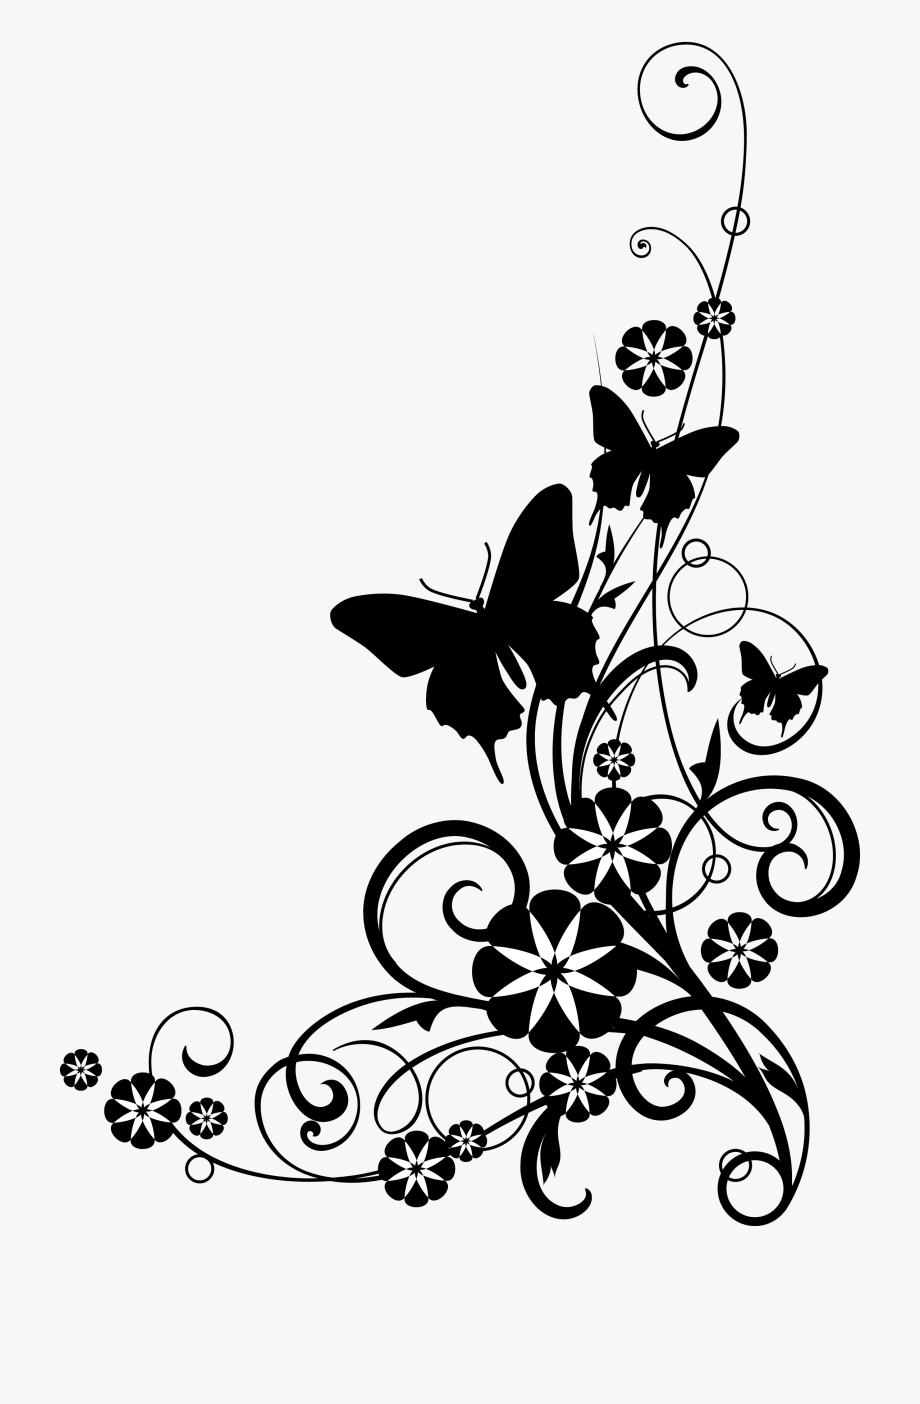 Rose Black And White Black And White Rose Clipart.